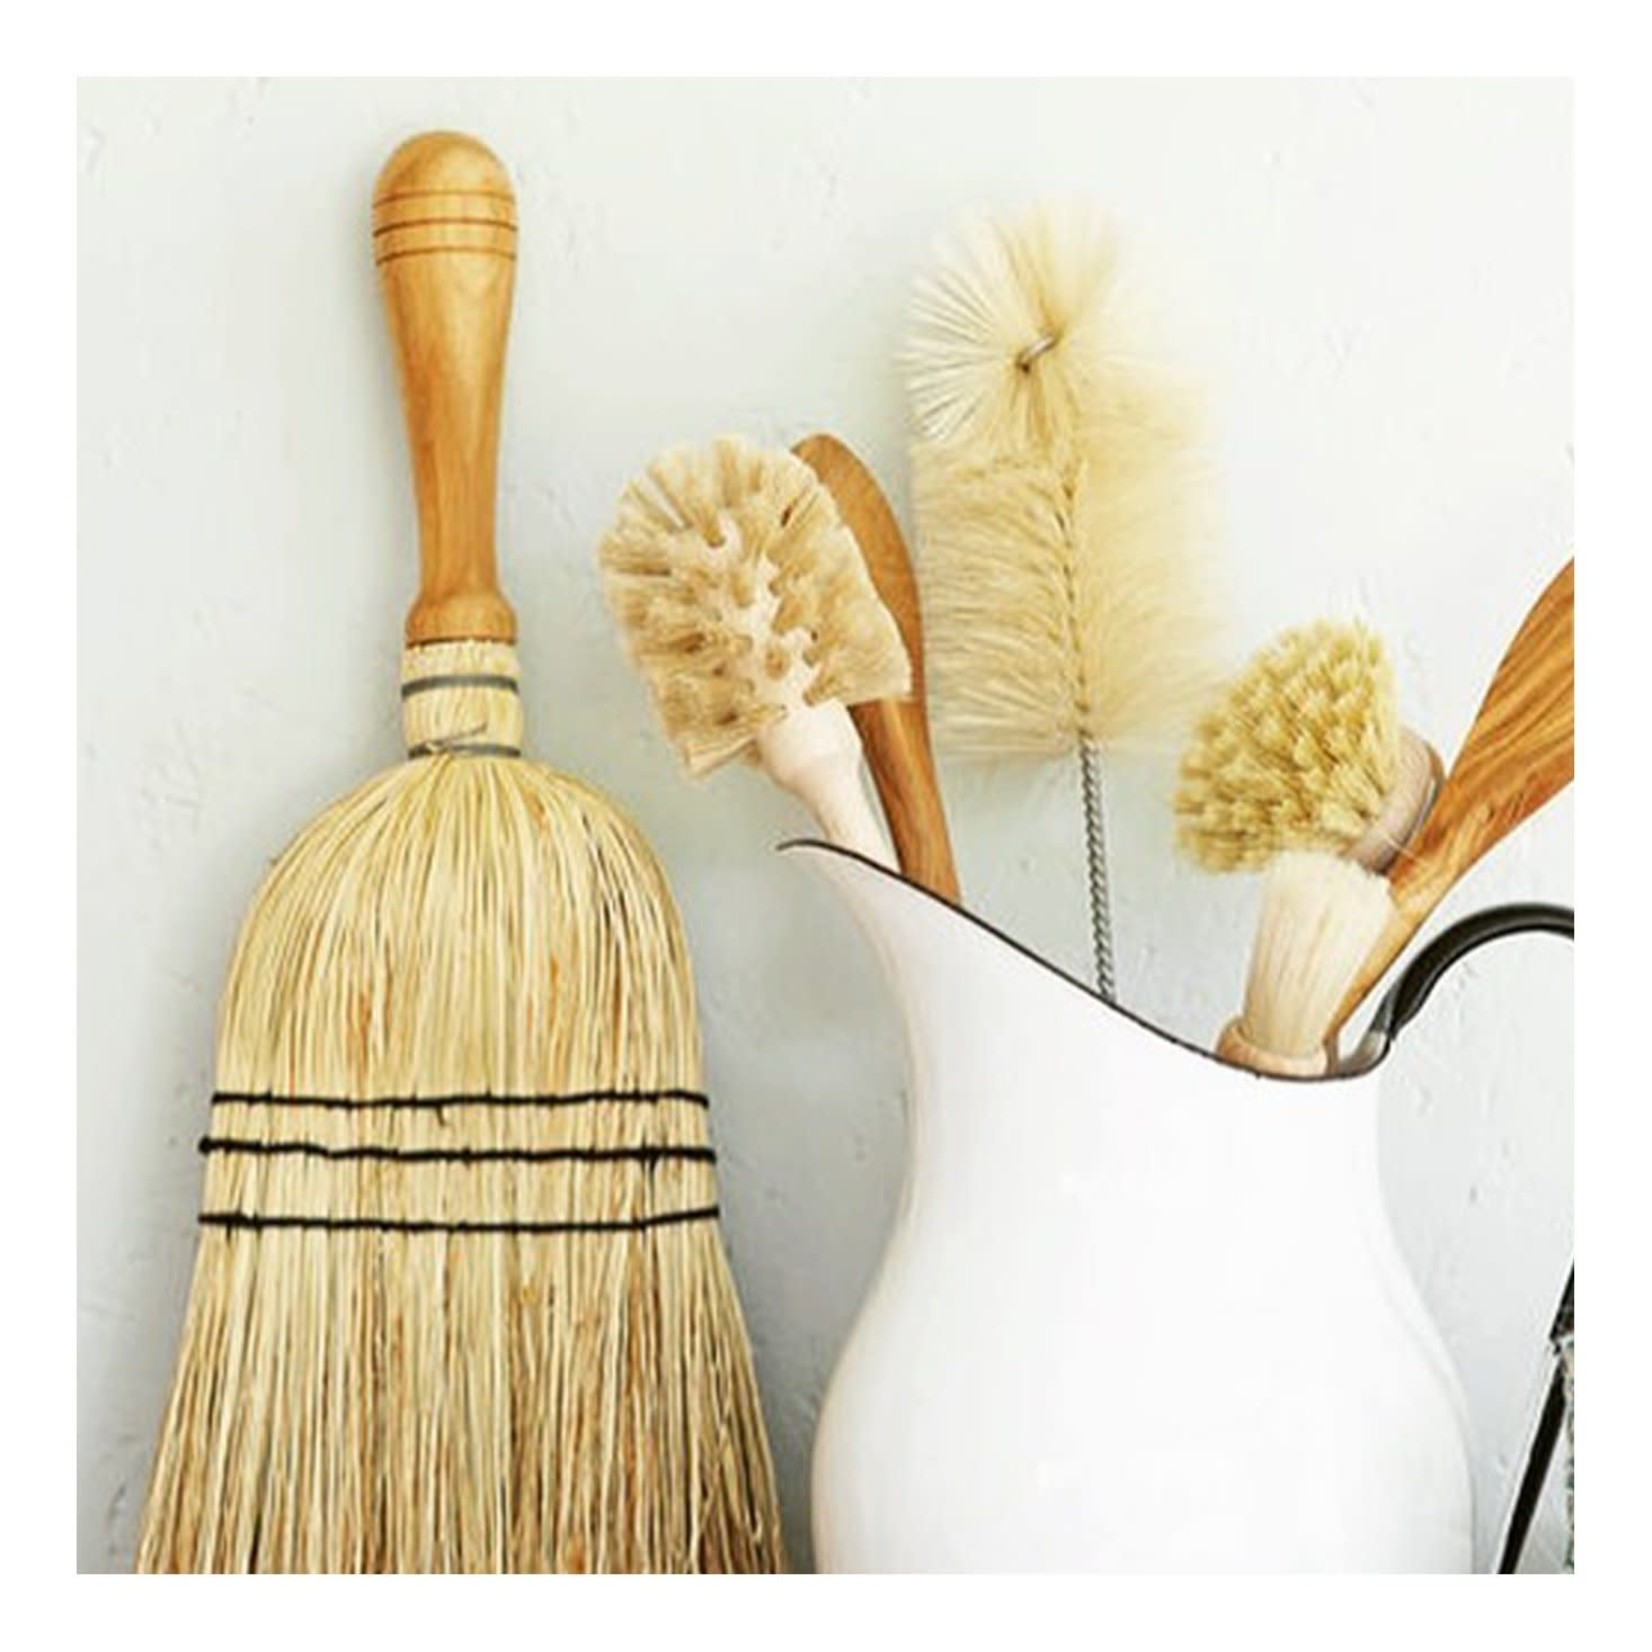 Redecker Redecker Stitched Straw Hand Brush